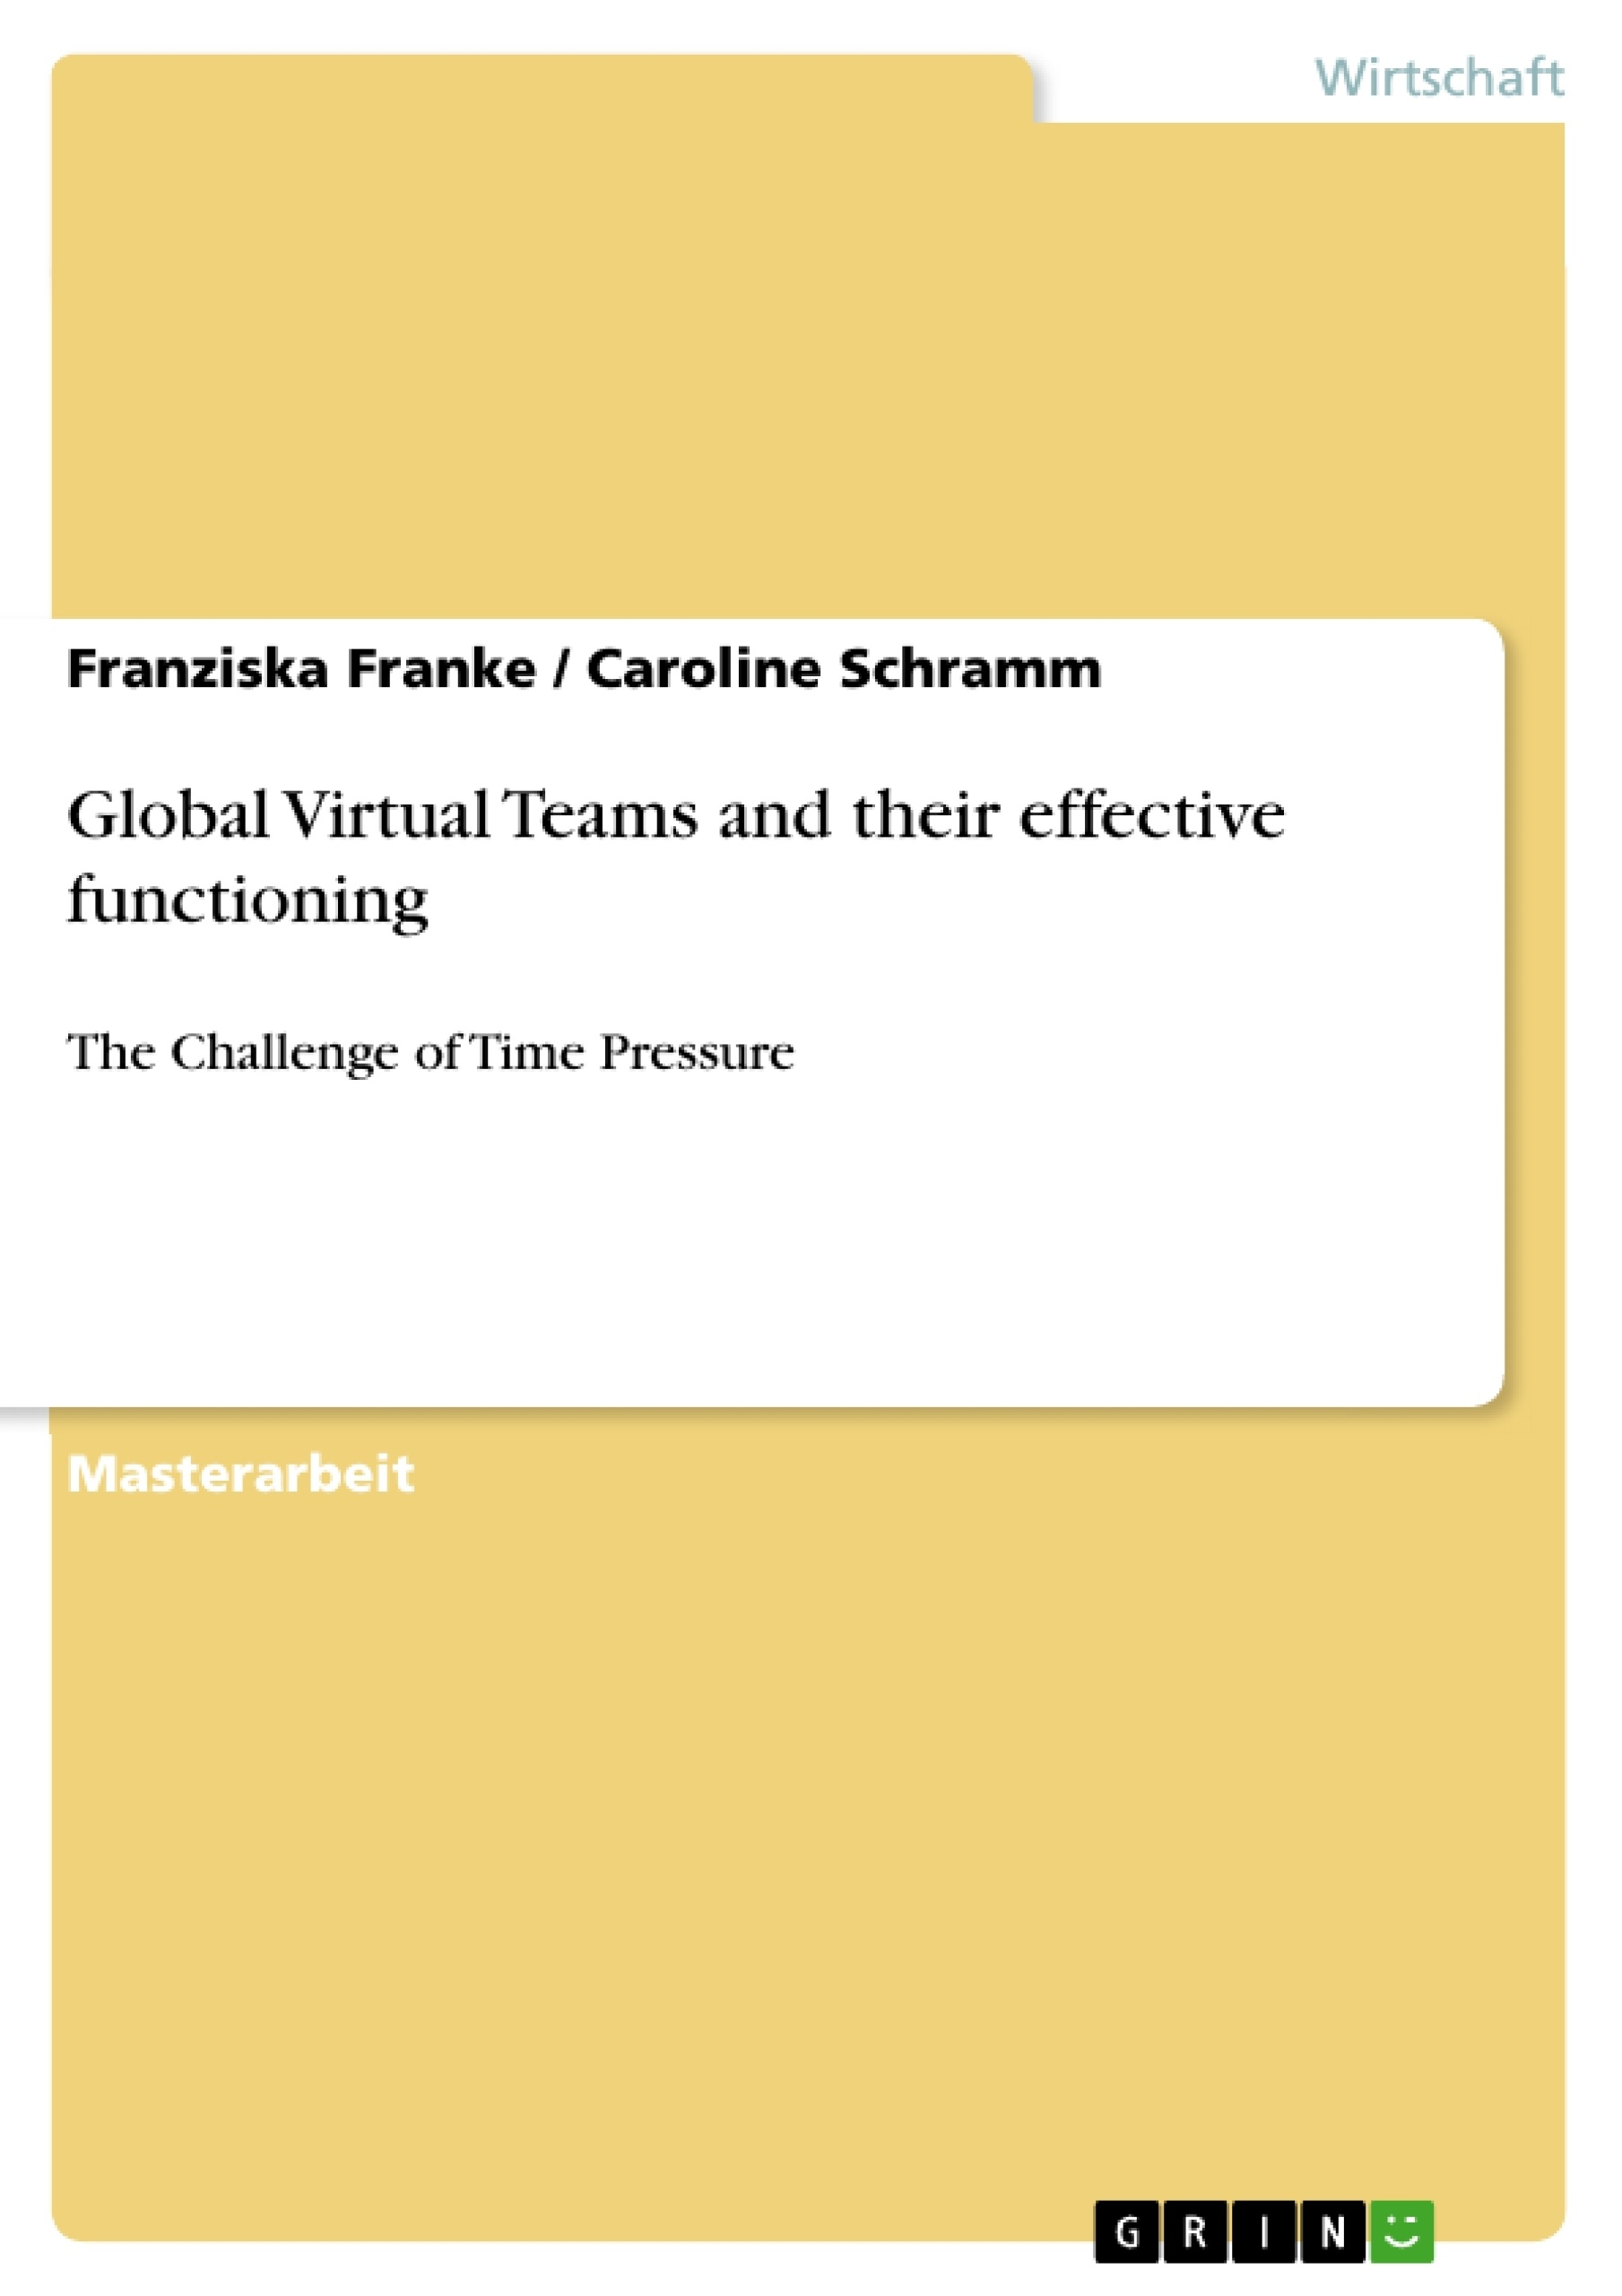 Titel: Global Virtual Teams and their effective functioning